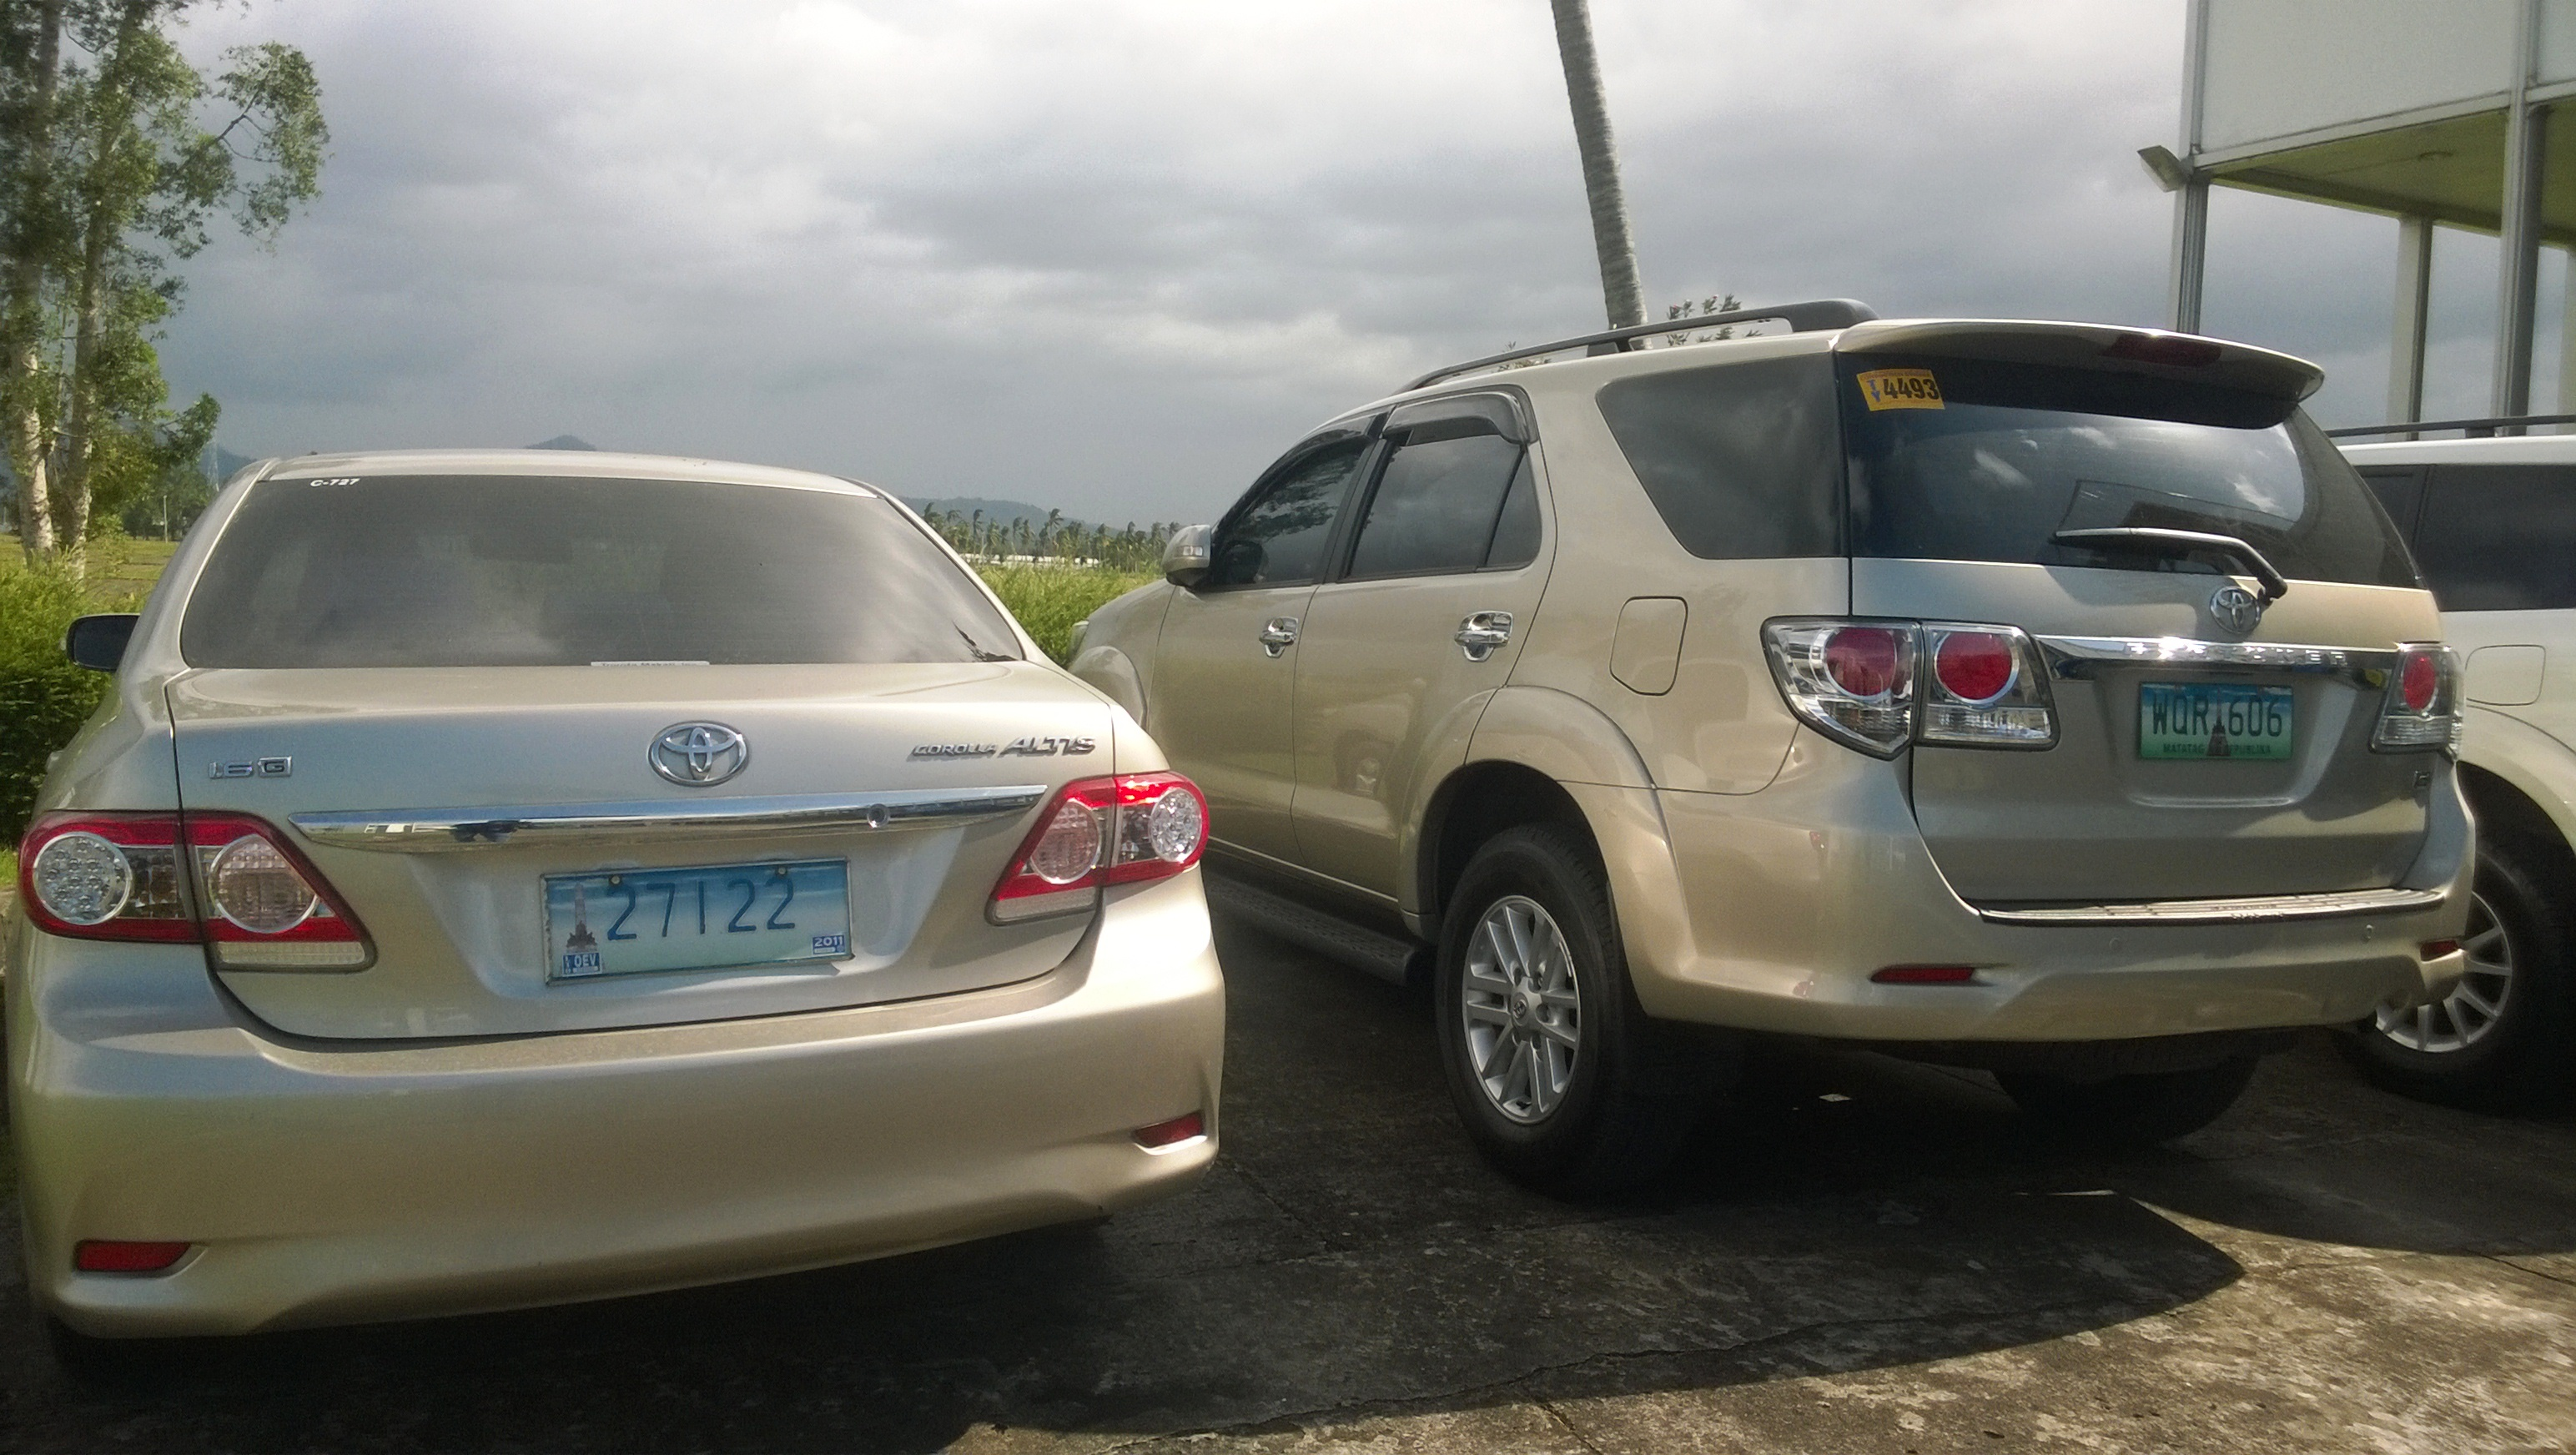 A toyota corolla altis with diplomatic oev plates side by side a green plated private toyota fortuner notice the difference in the placement of the